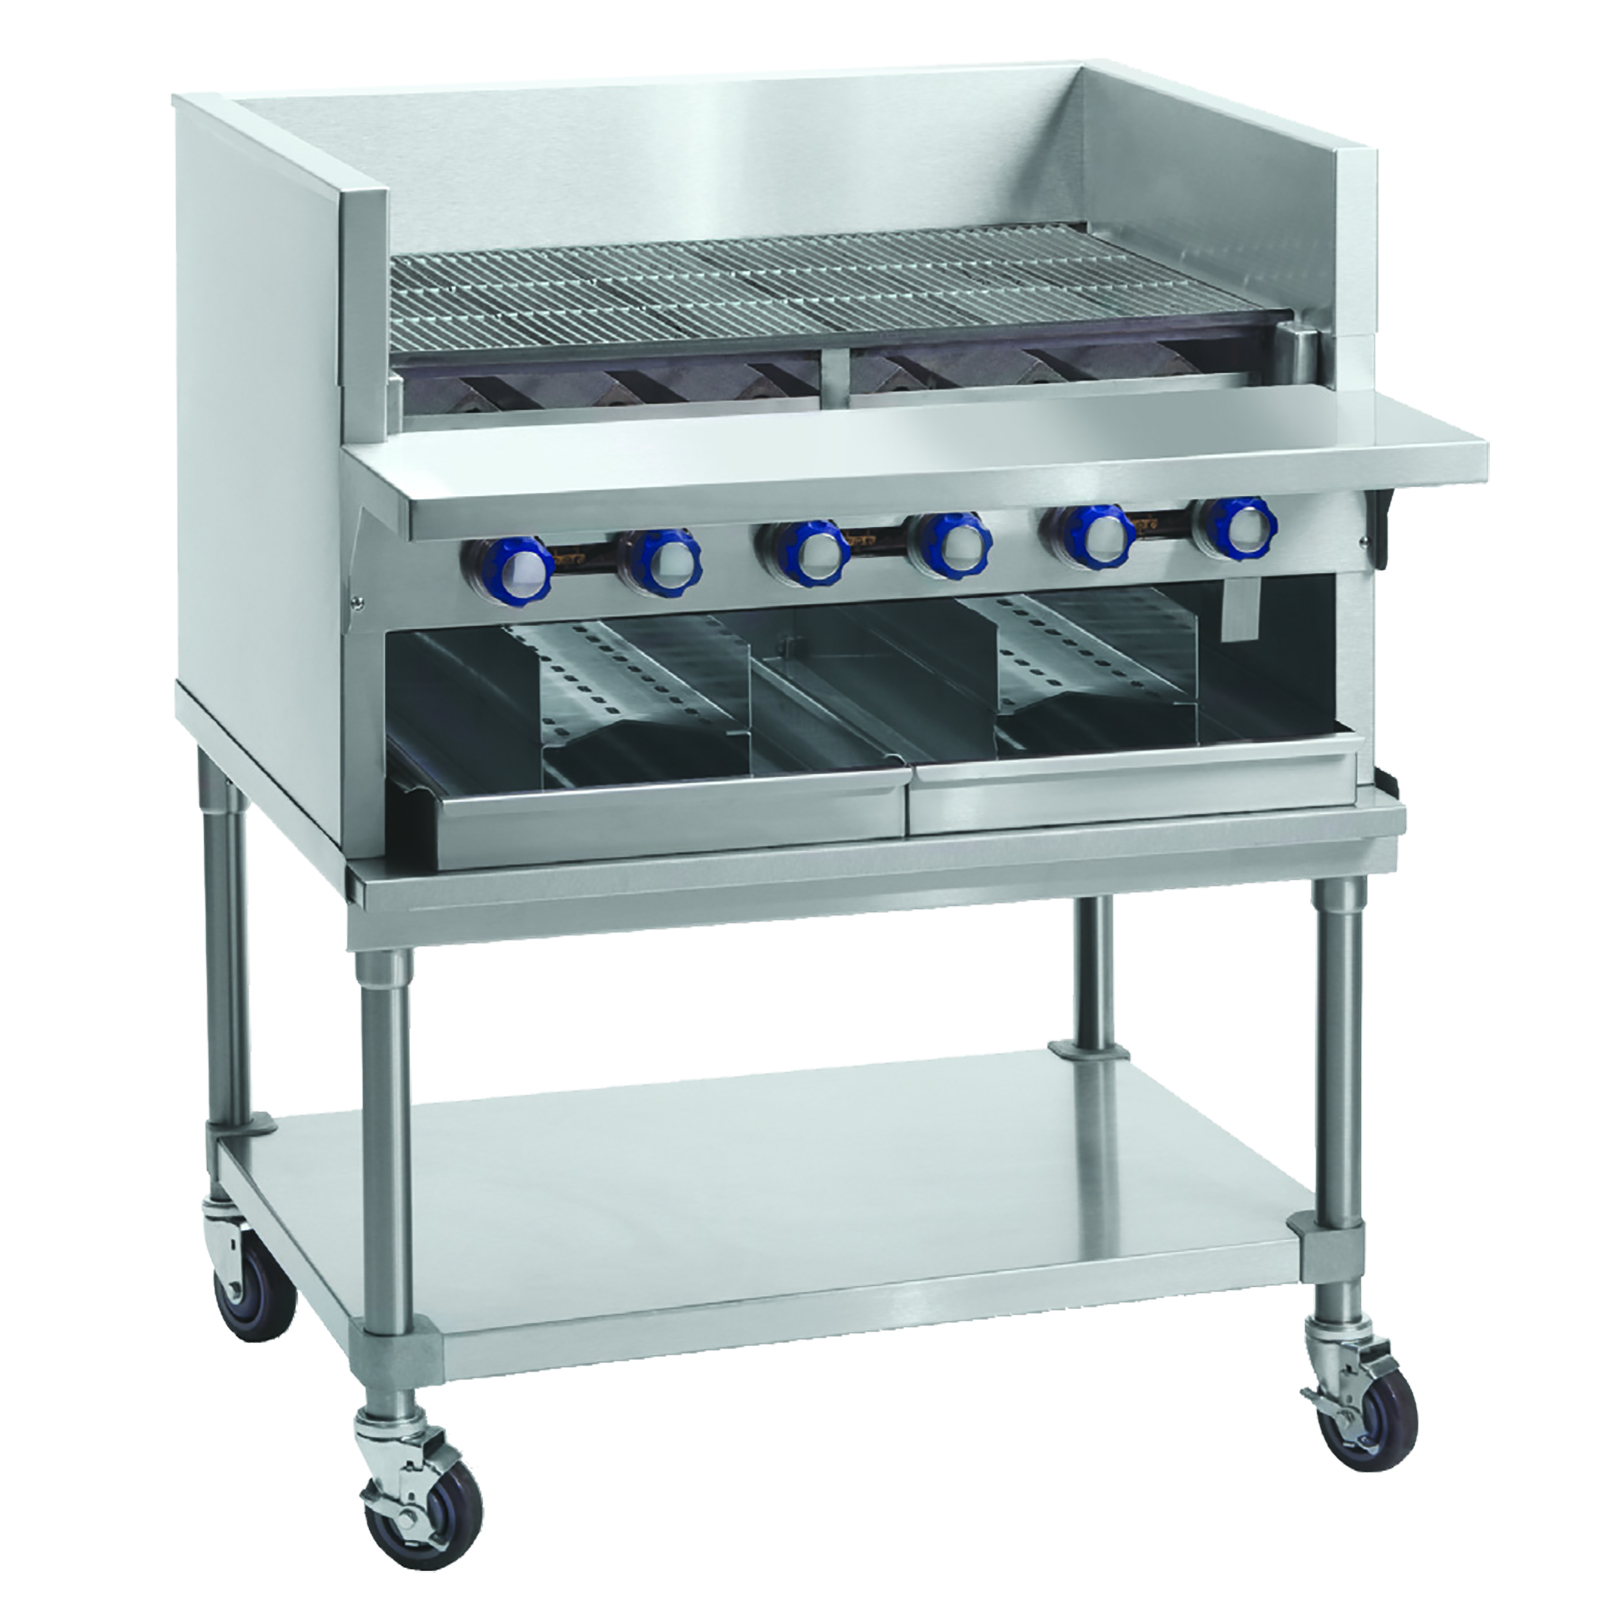 Imperial IABAT-72 equipment stand, for countertop cooking